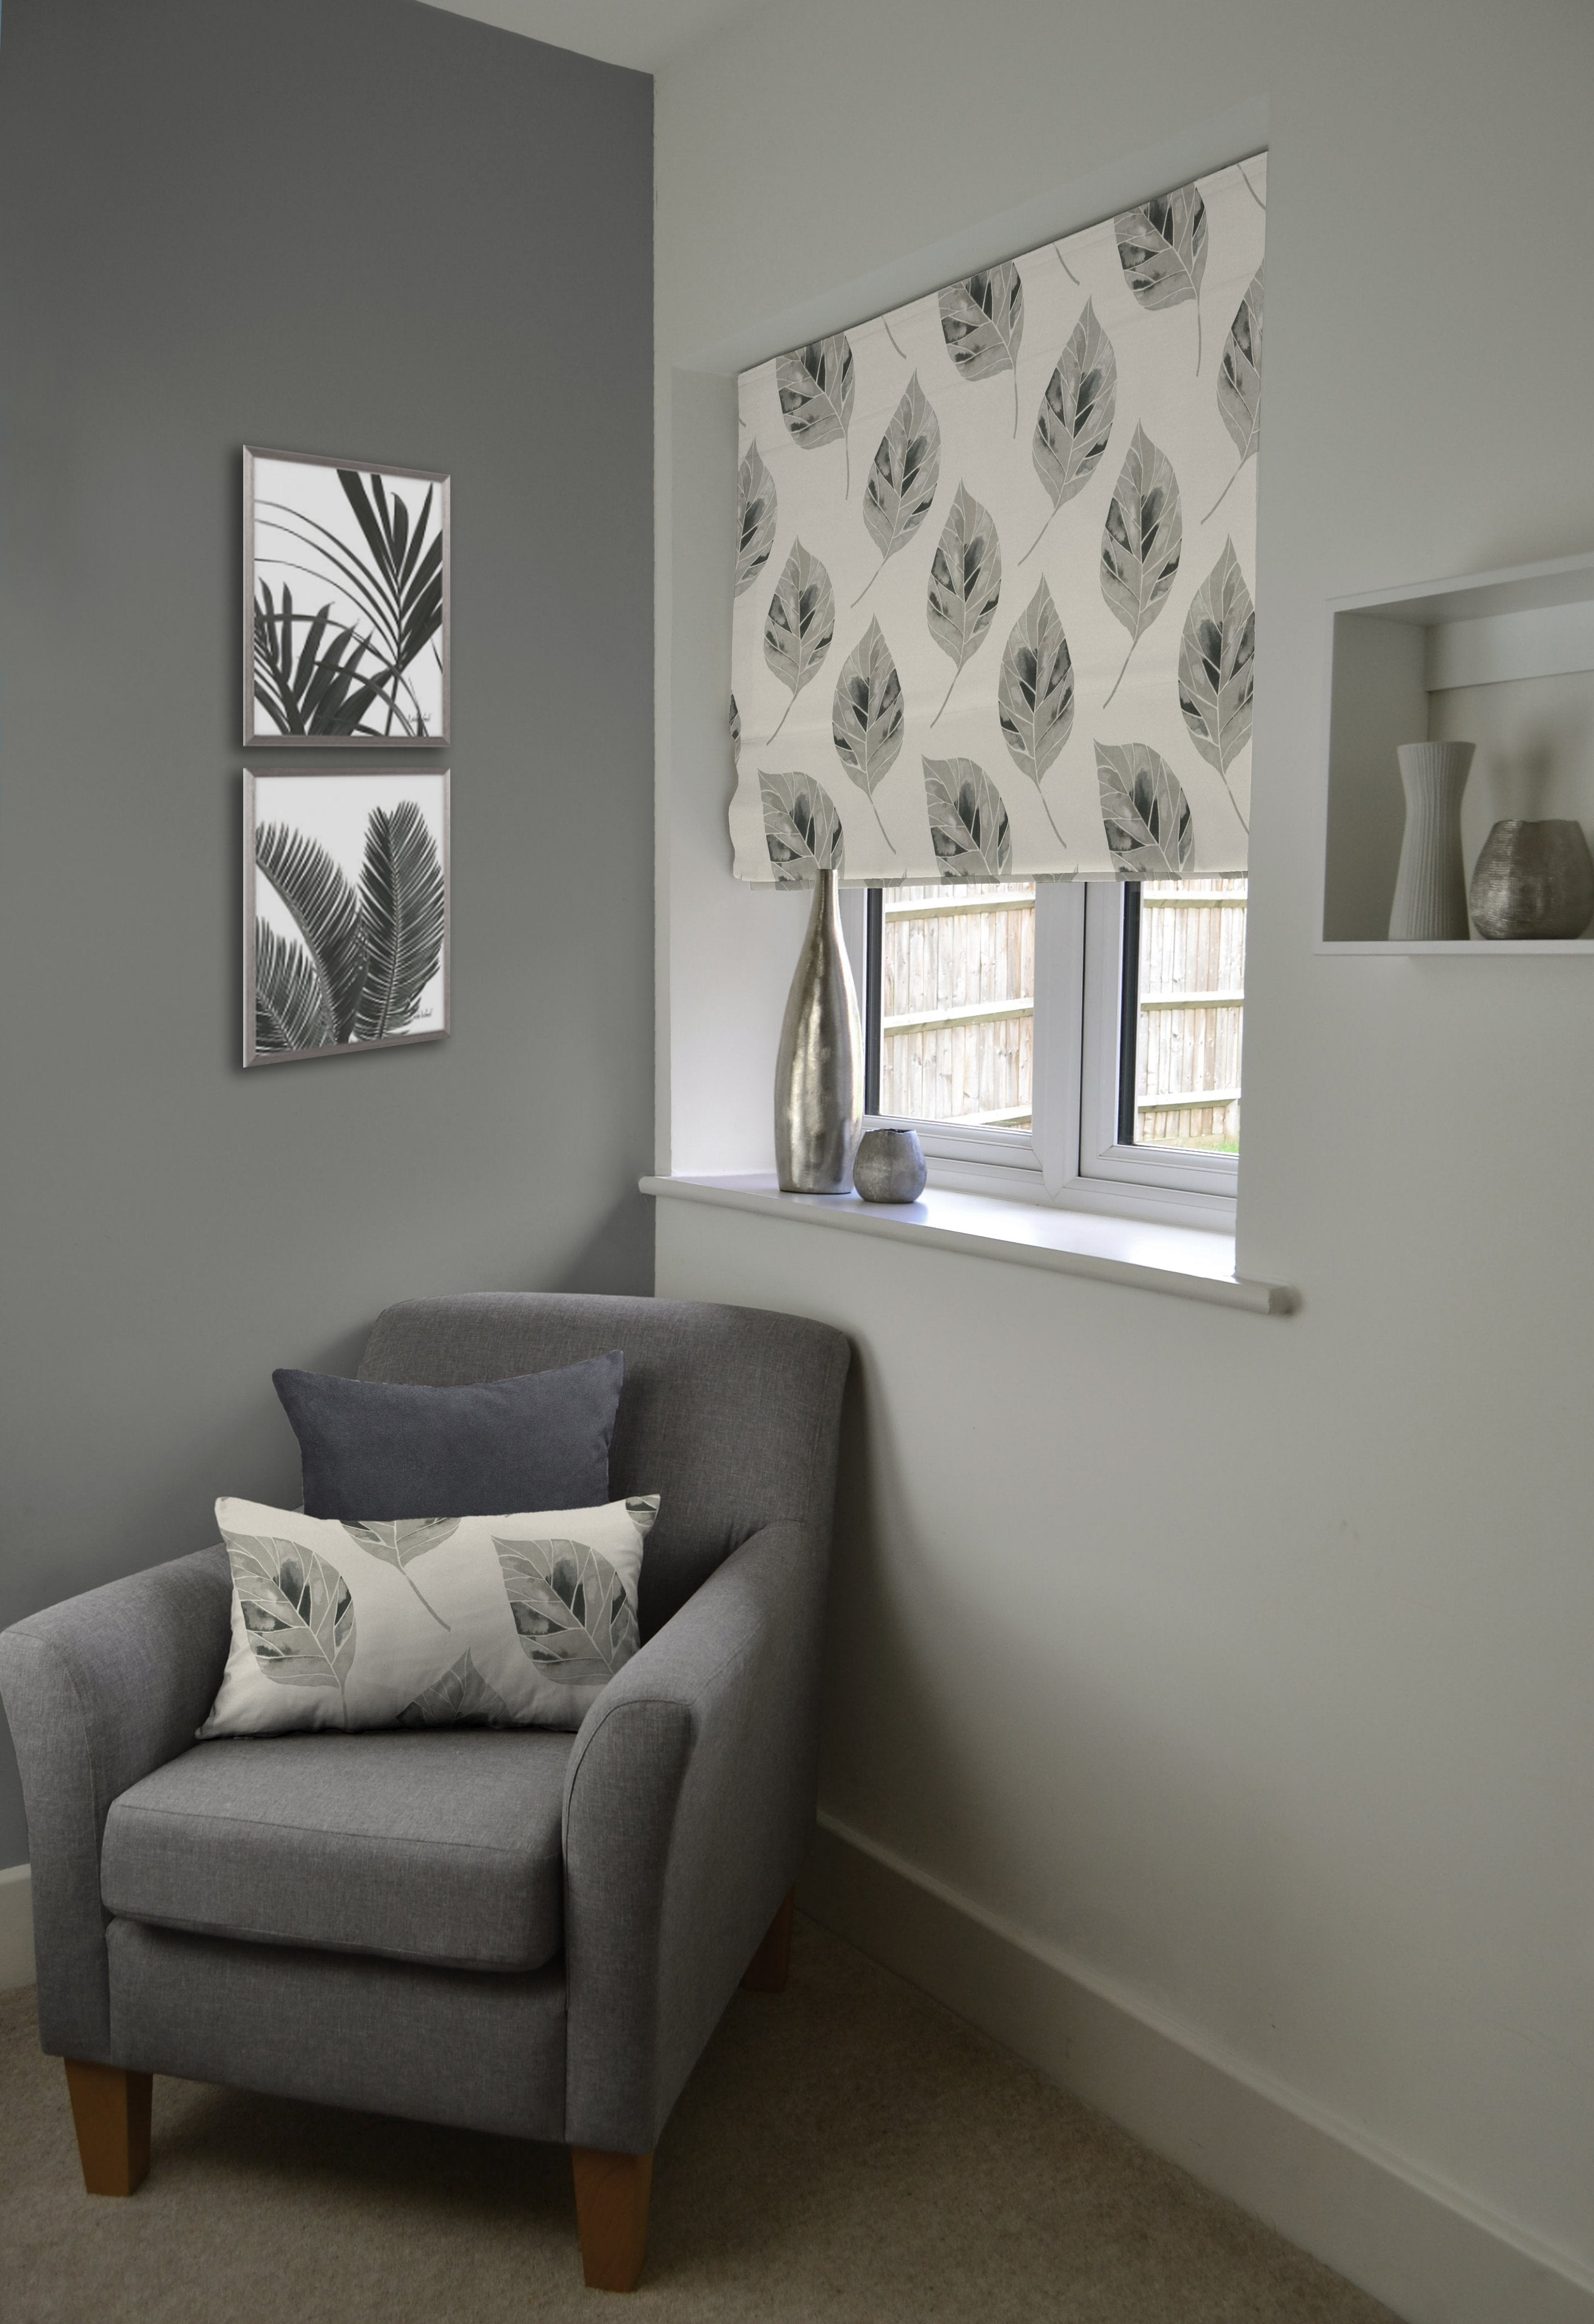 McAlister Textiles Leaf Soft Grey Cotton Print Roman Blinds Roman Blinds